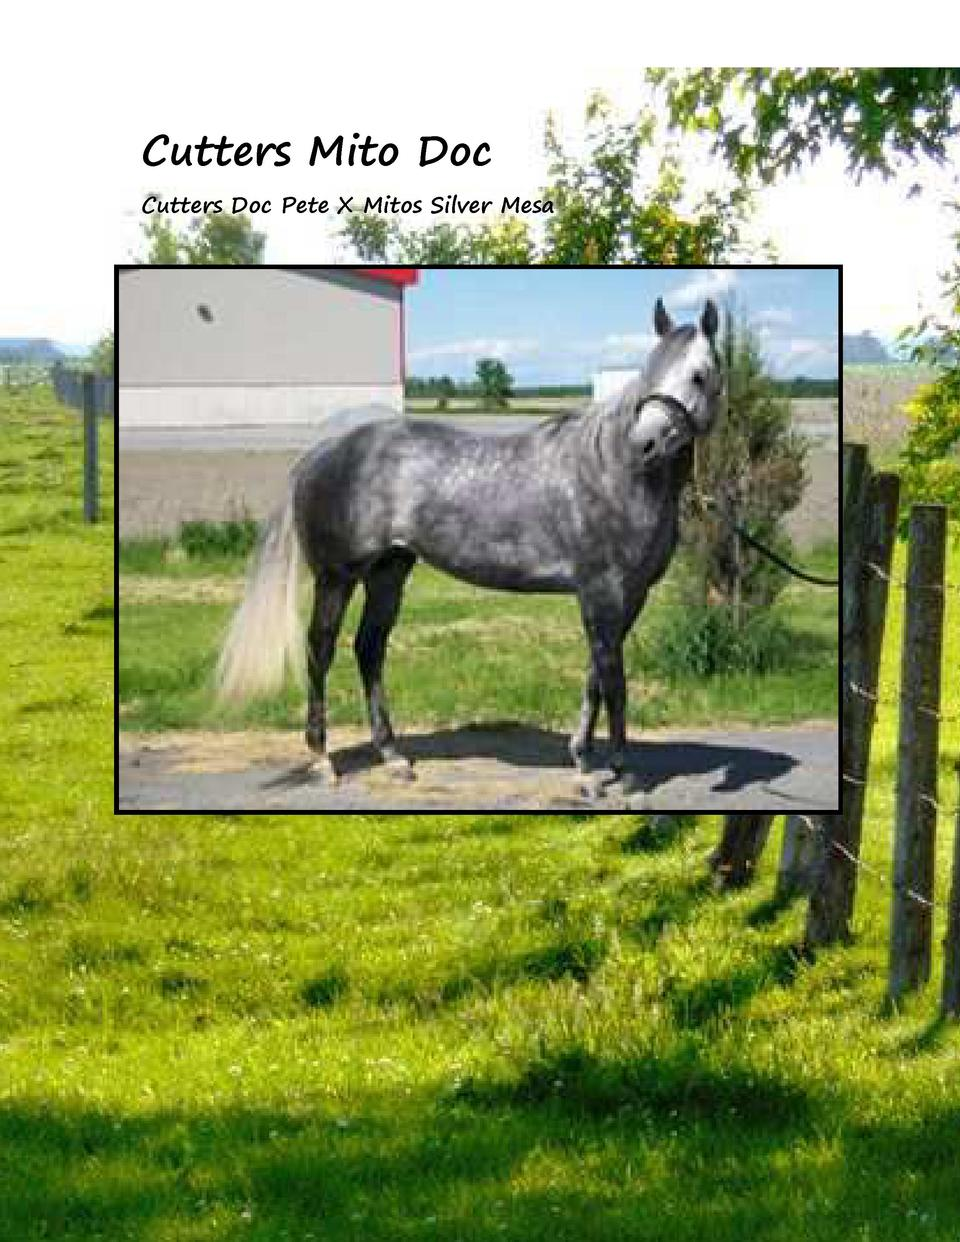 Cutters Mito Doc Cutters Doc Pete X Mitos Silver Mesa